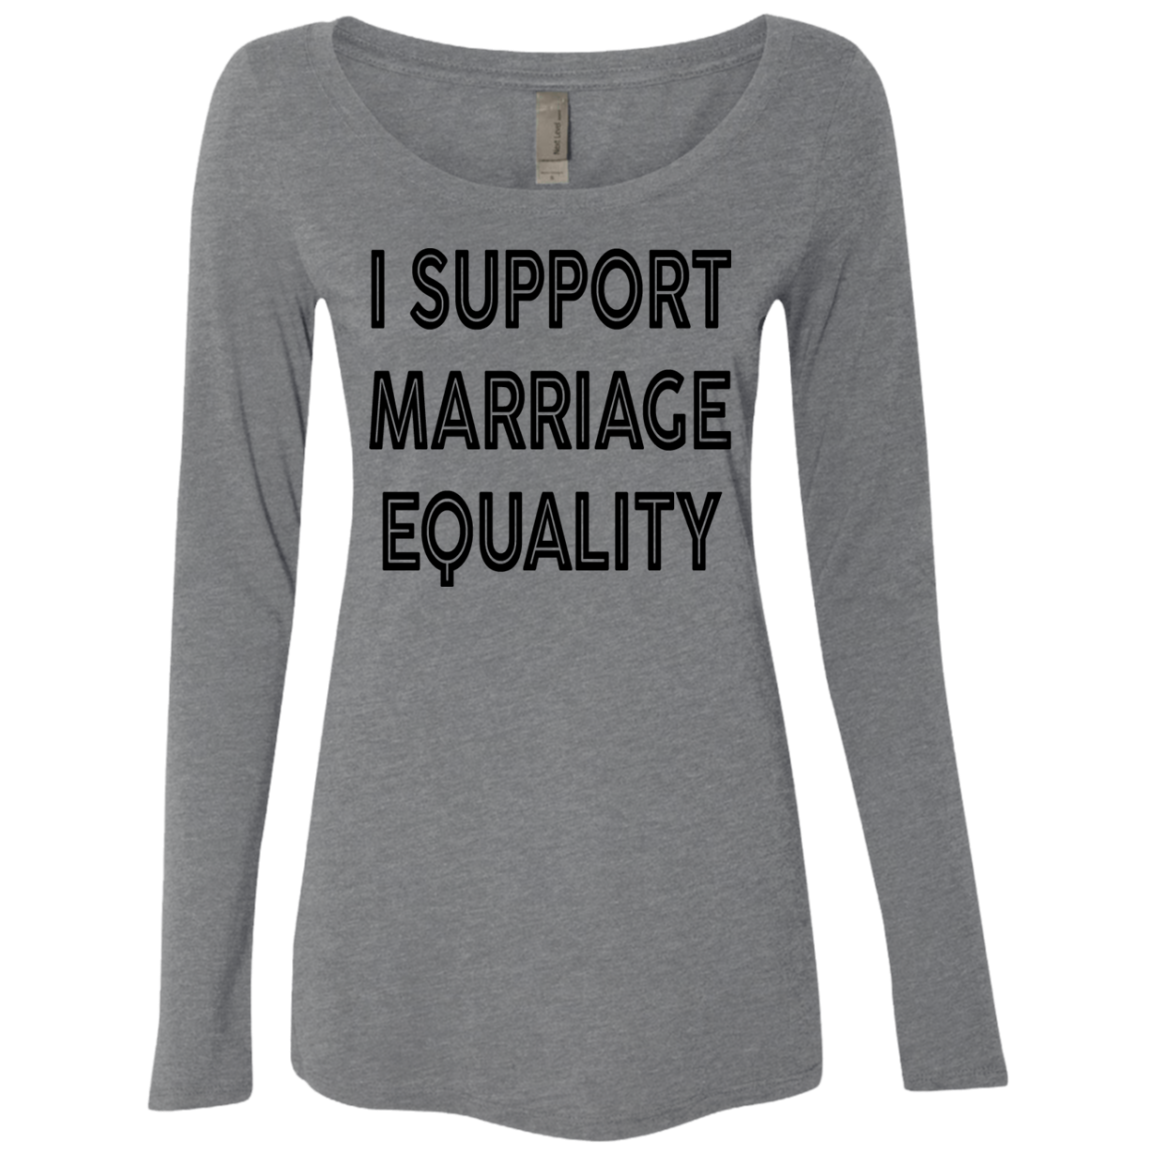 I Support Marriage Equality Women's Long Sleeve Tee